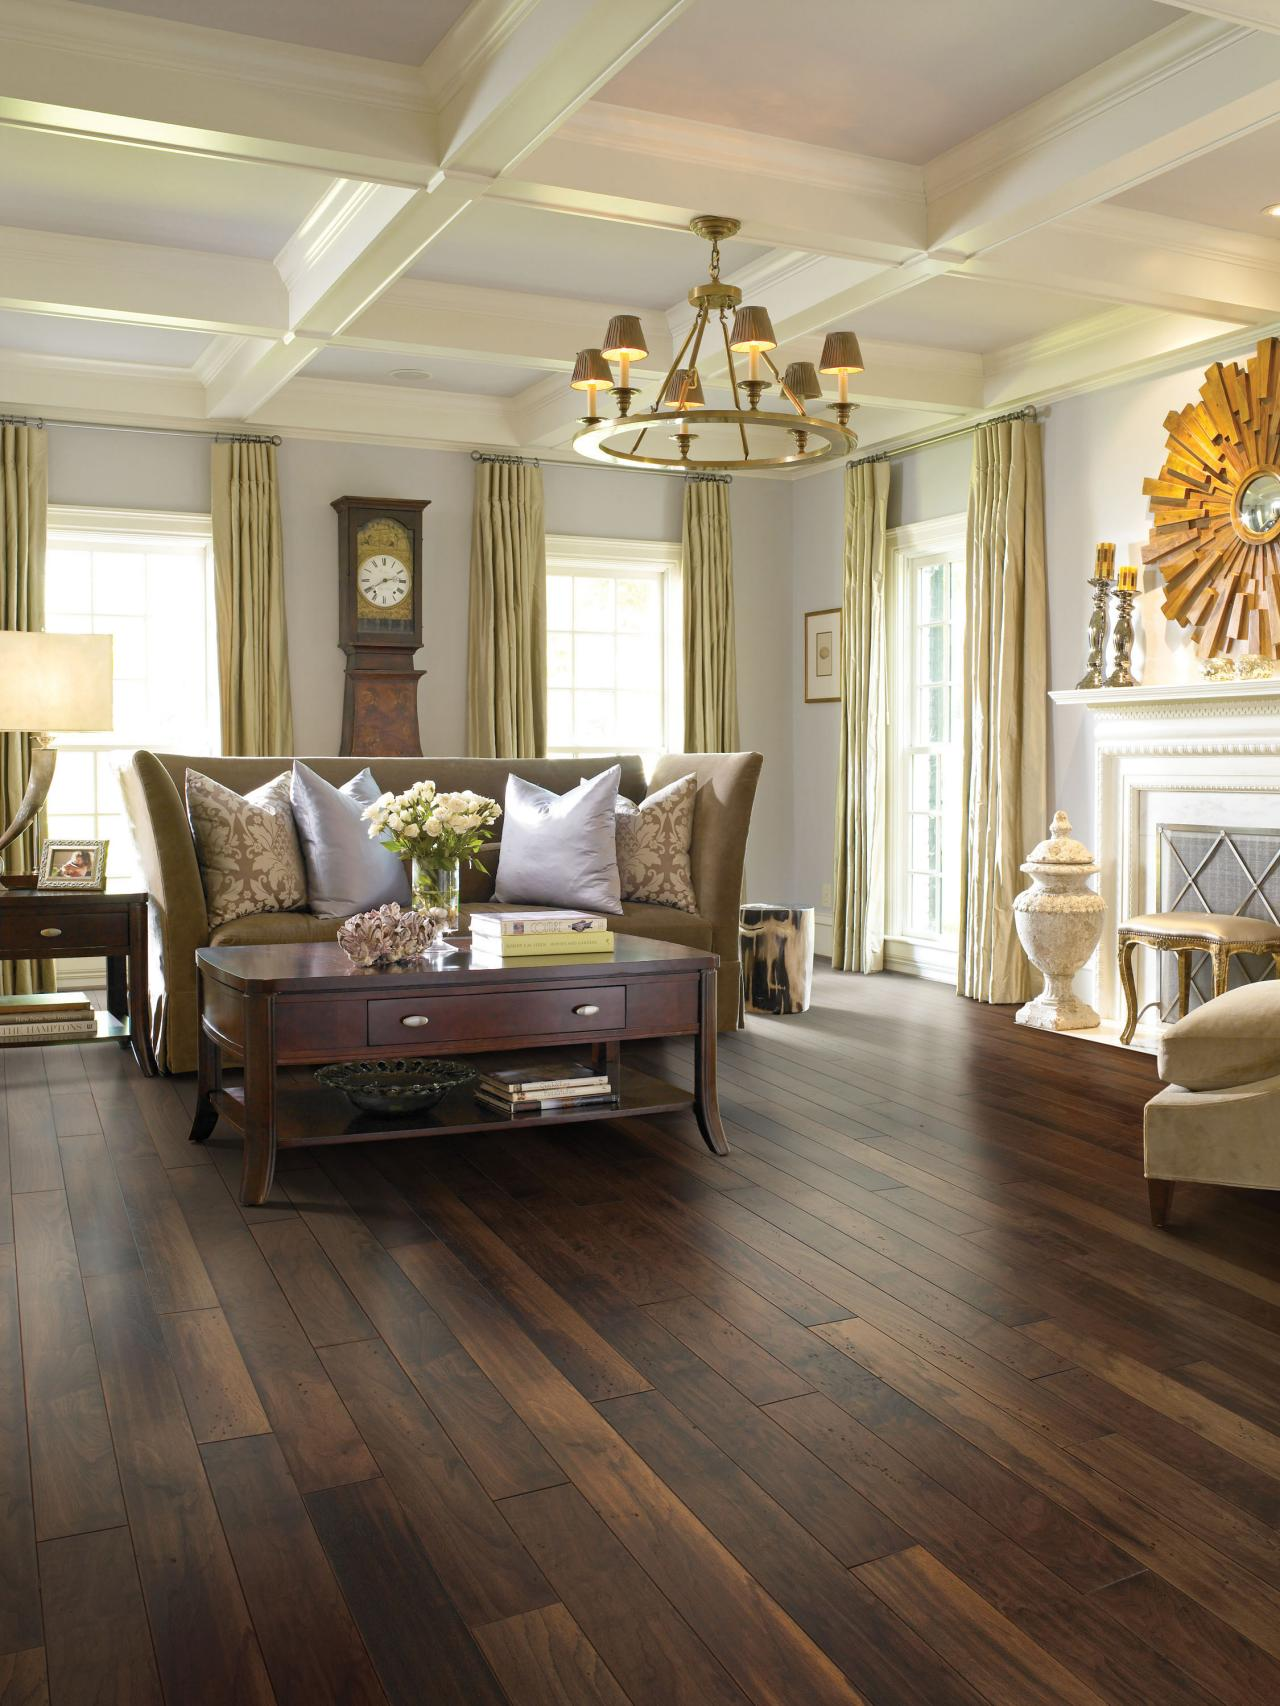 Choosing hardwood flooring hgtv for Living room with wood floors